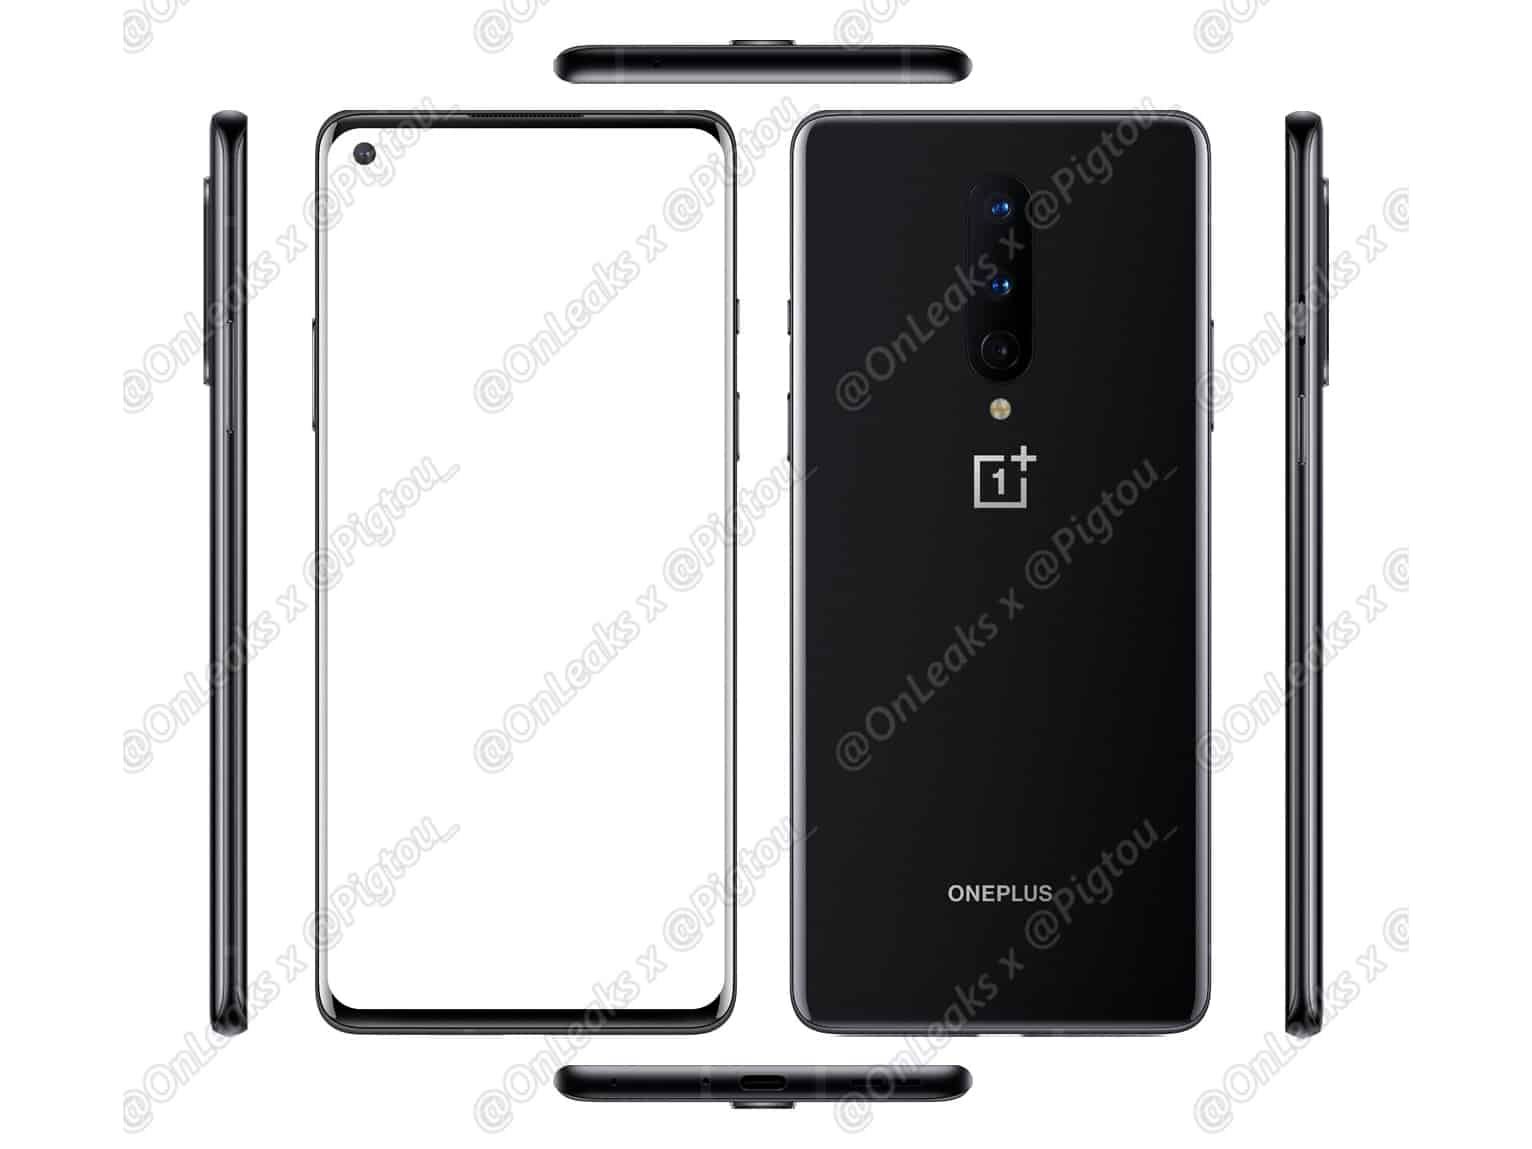 OnePlus 8 all angles leak featured